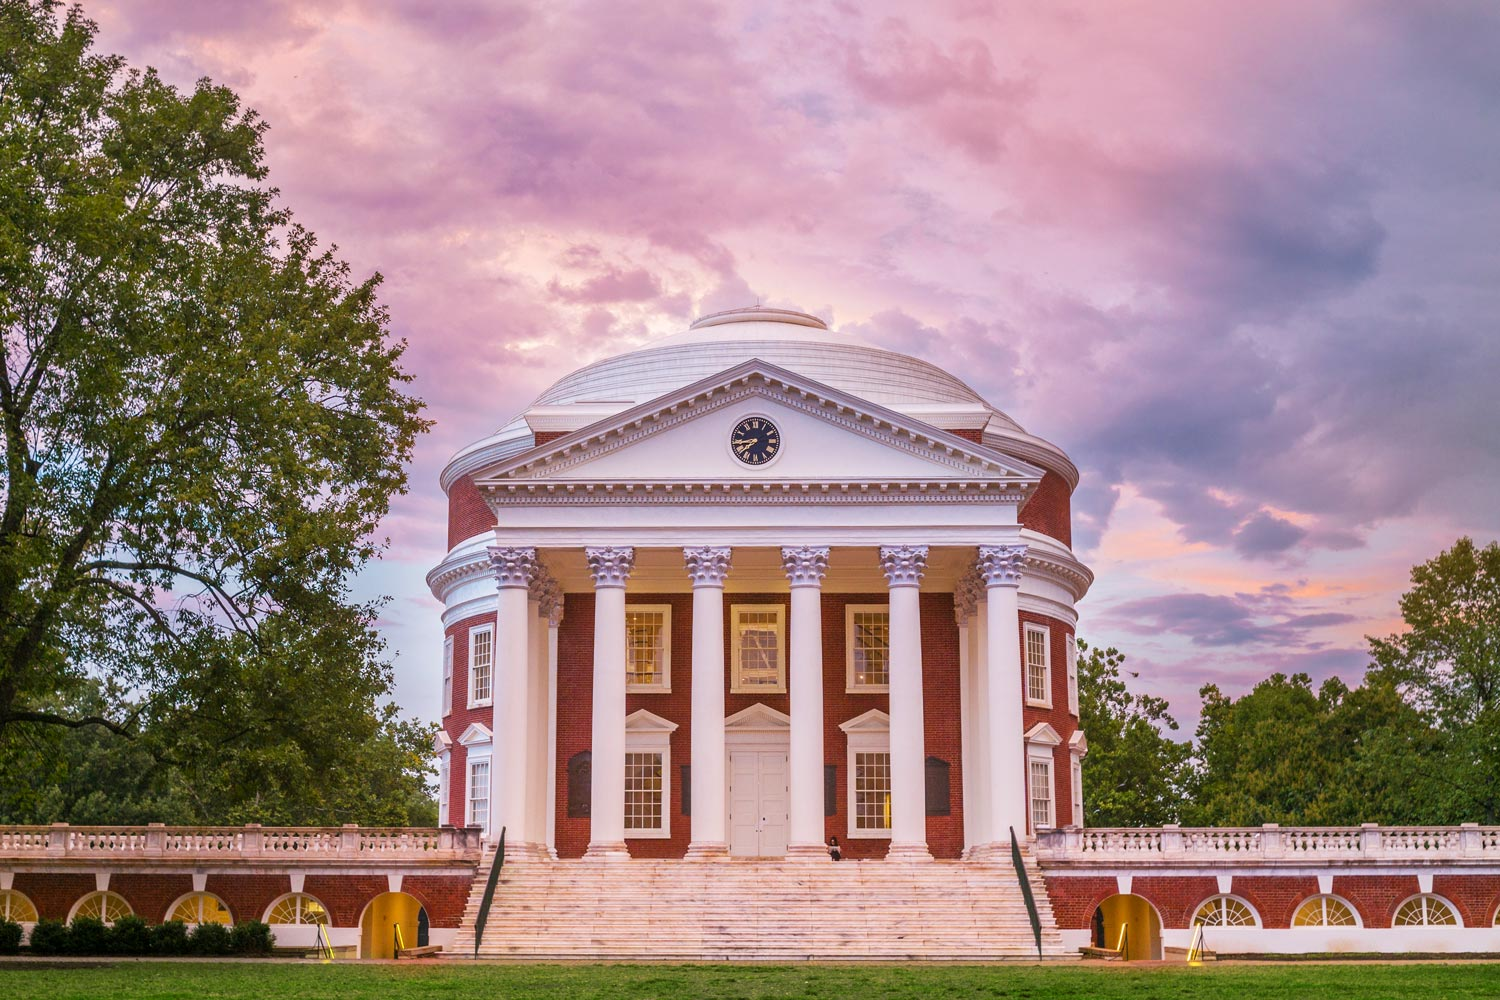 New Commissioners Will Focus on Untold Stories of UVA in the Age of Segregation